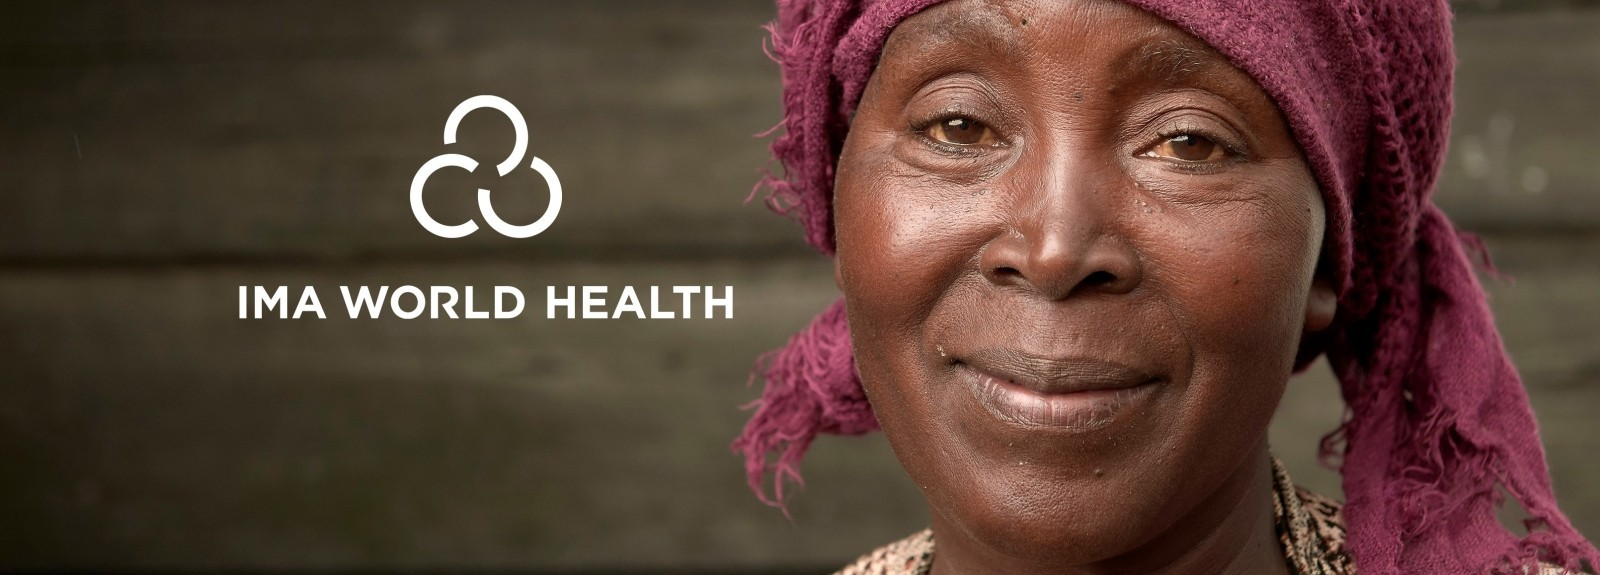 To commemorate six decades of working together to bring health, healing and well-being for all, and to reflect our expanding work around the world, IMA World Health has a dynamic new logo.